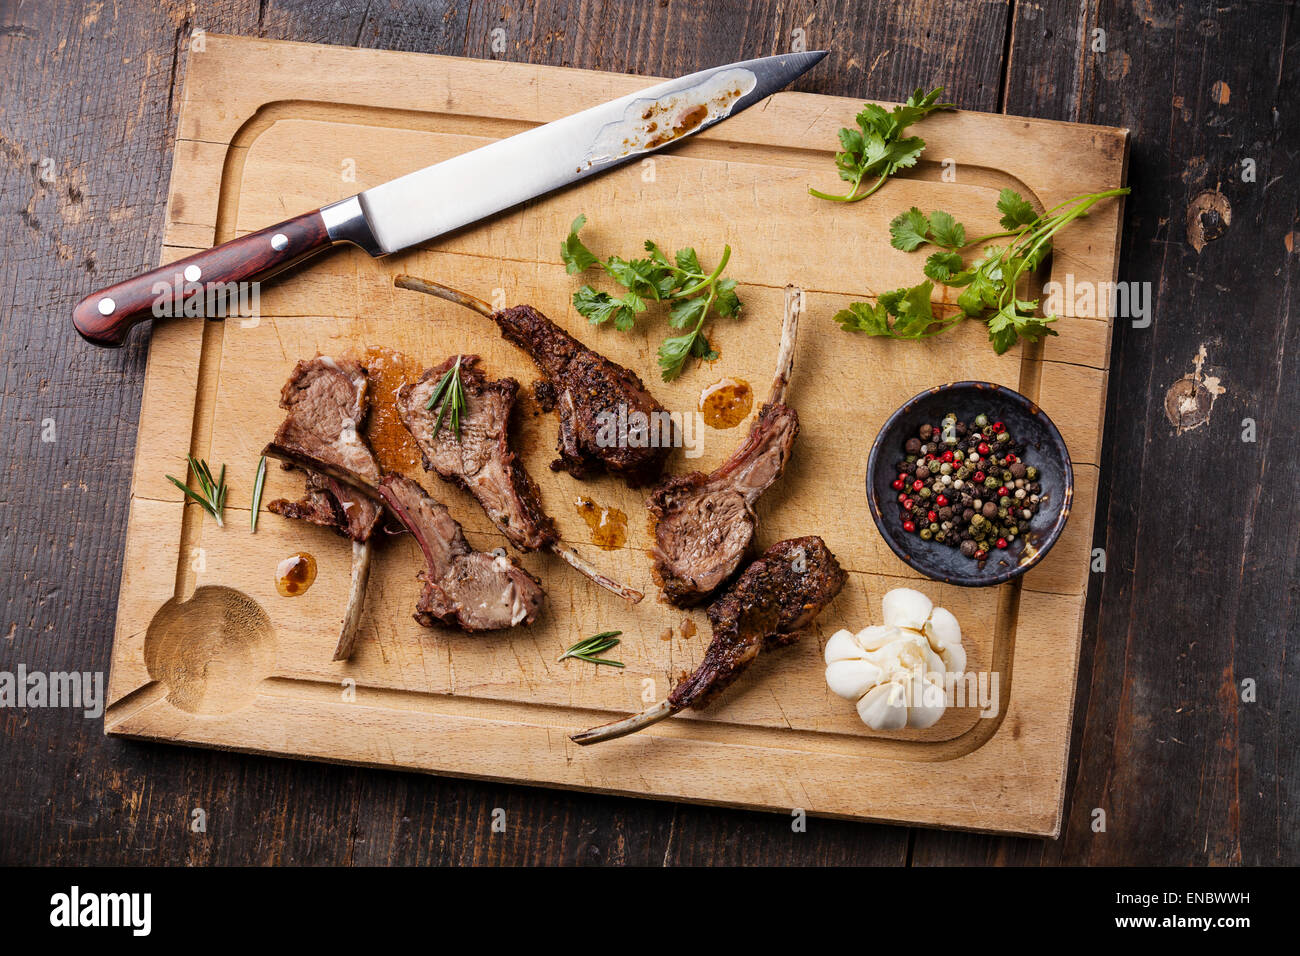 Roasted lamb ribs and kitchen knife on wooden cutting board on dark background - Stock Image